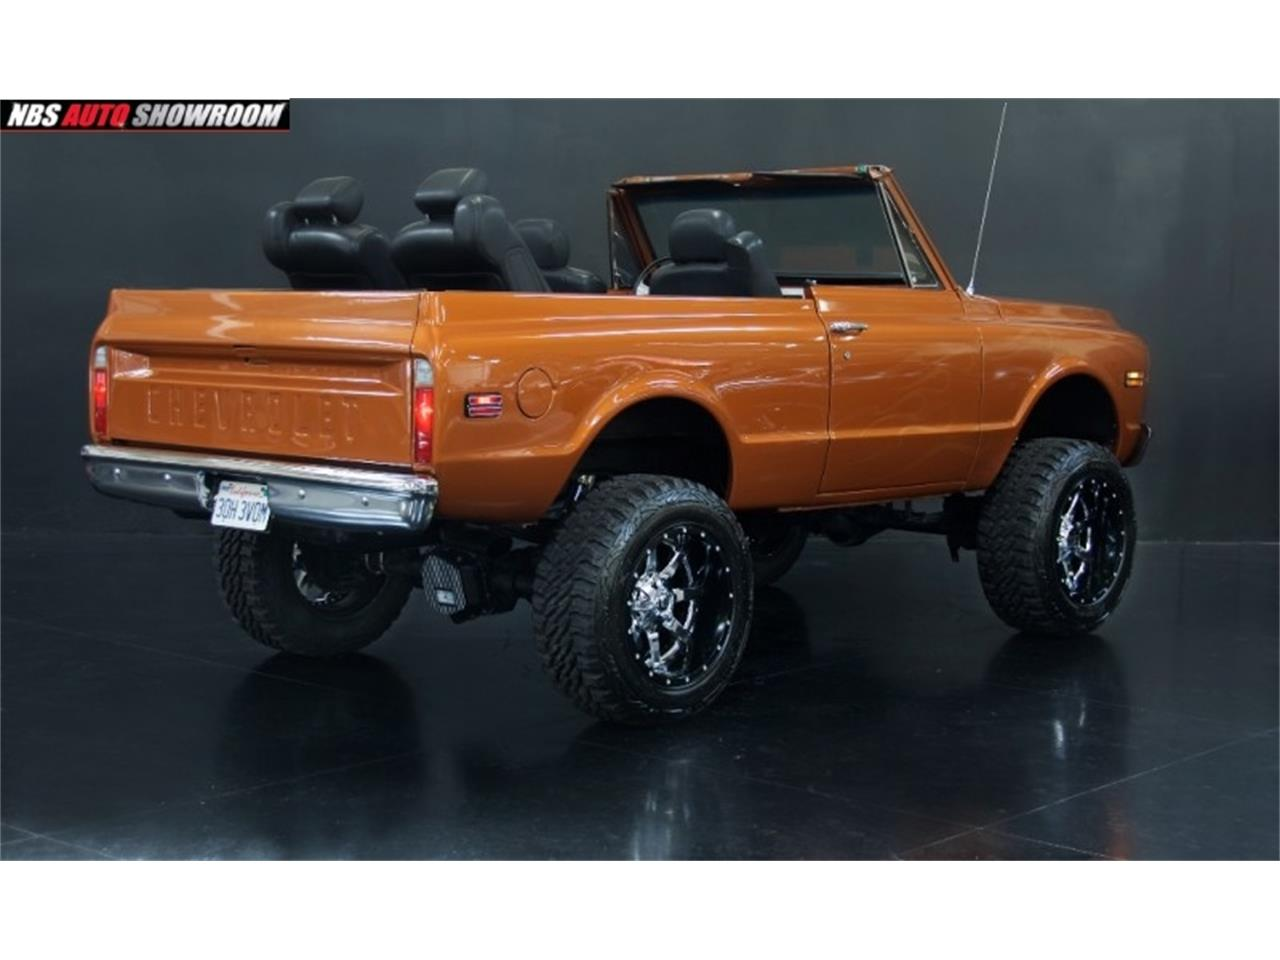 Large Picture of Classic '70 Chevrolet Blazer located in Milpitas California - $55,250.00 Offered by NBS Auto Showroom - PR1D